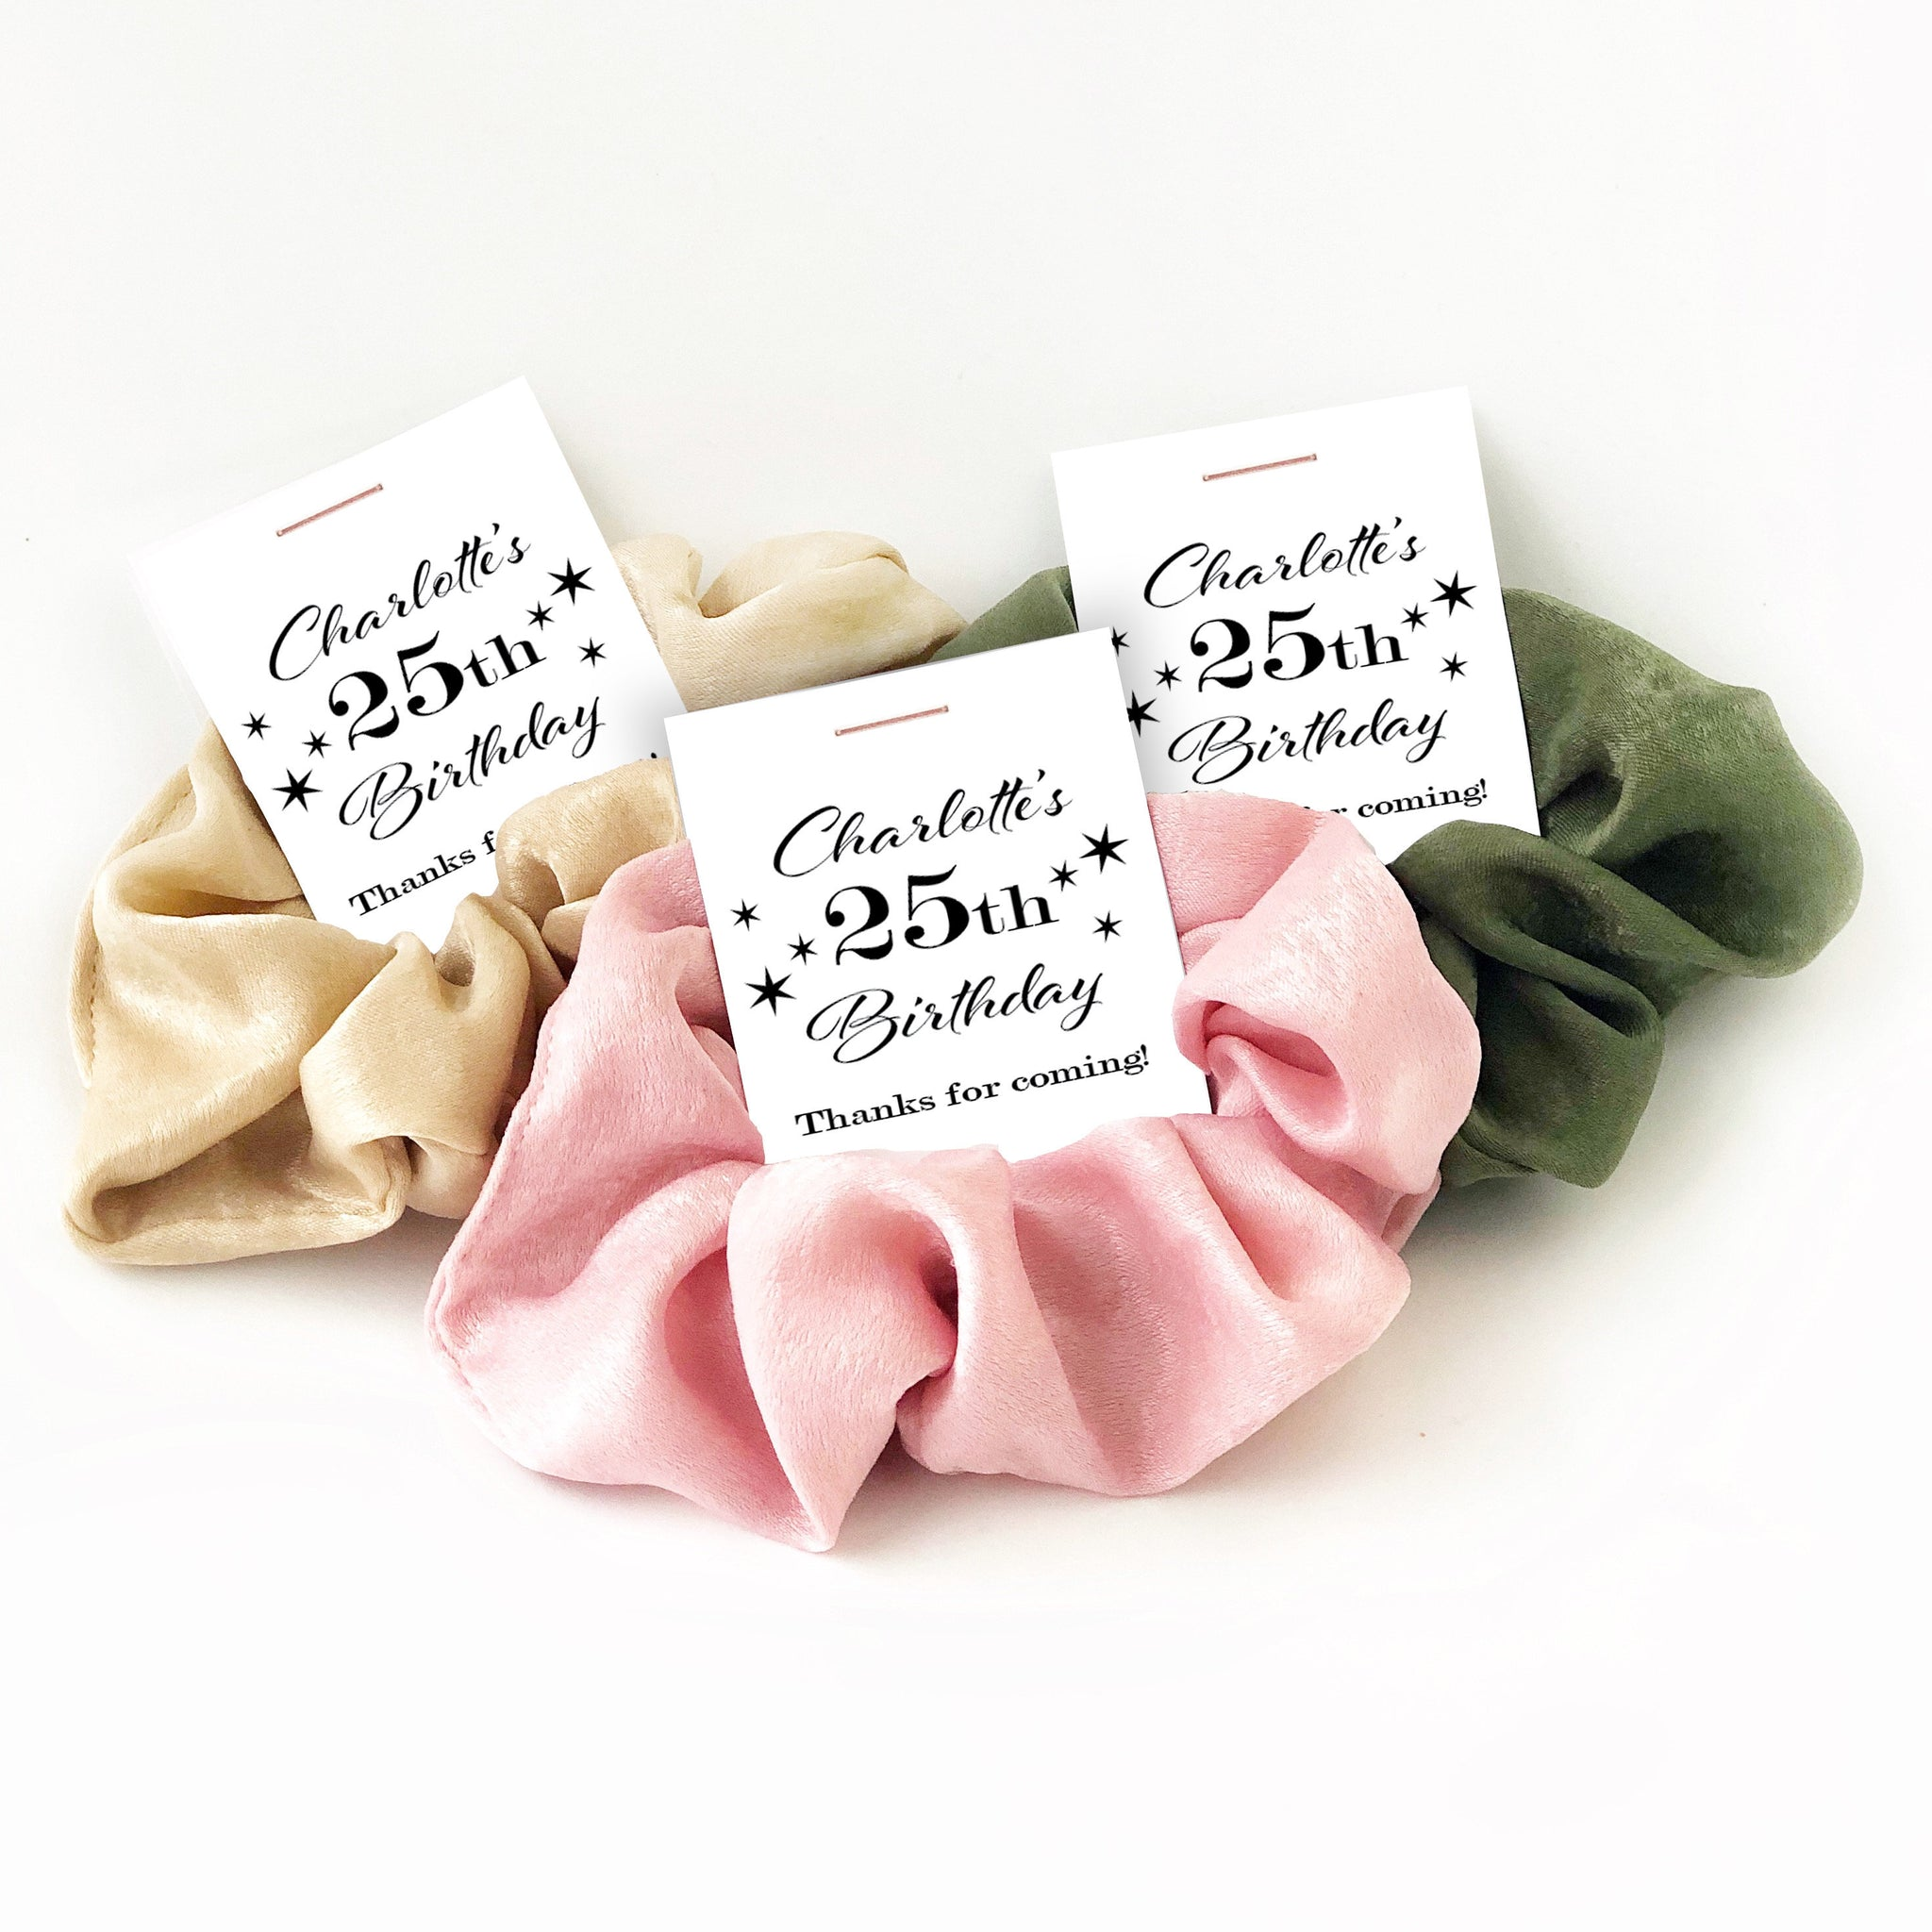 25th Birthday Party Favors, Hair Scrunchies - @PlumPolkaDot